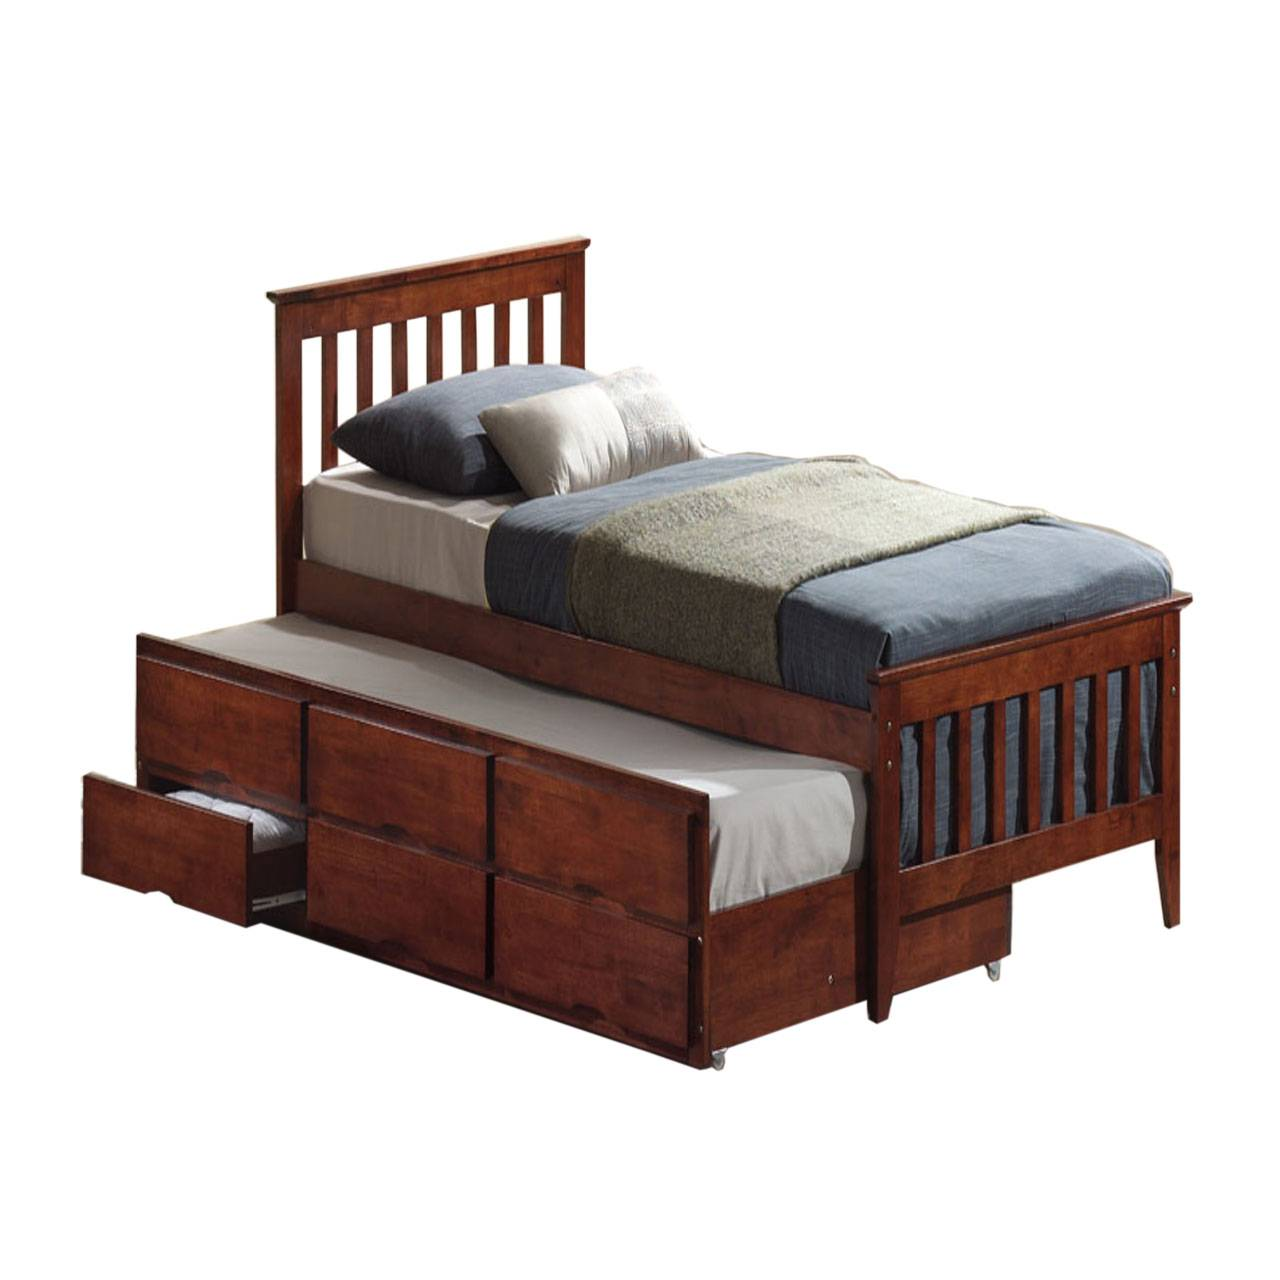 Brody Trundle Bed Furniture Store Manila Philippines Urban Concepts